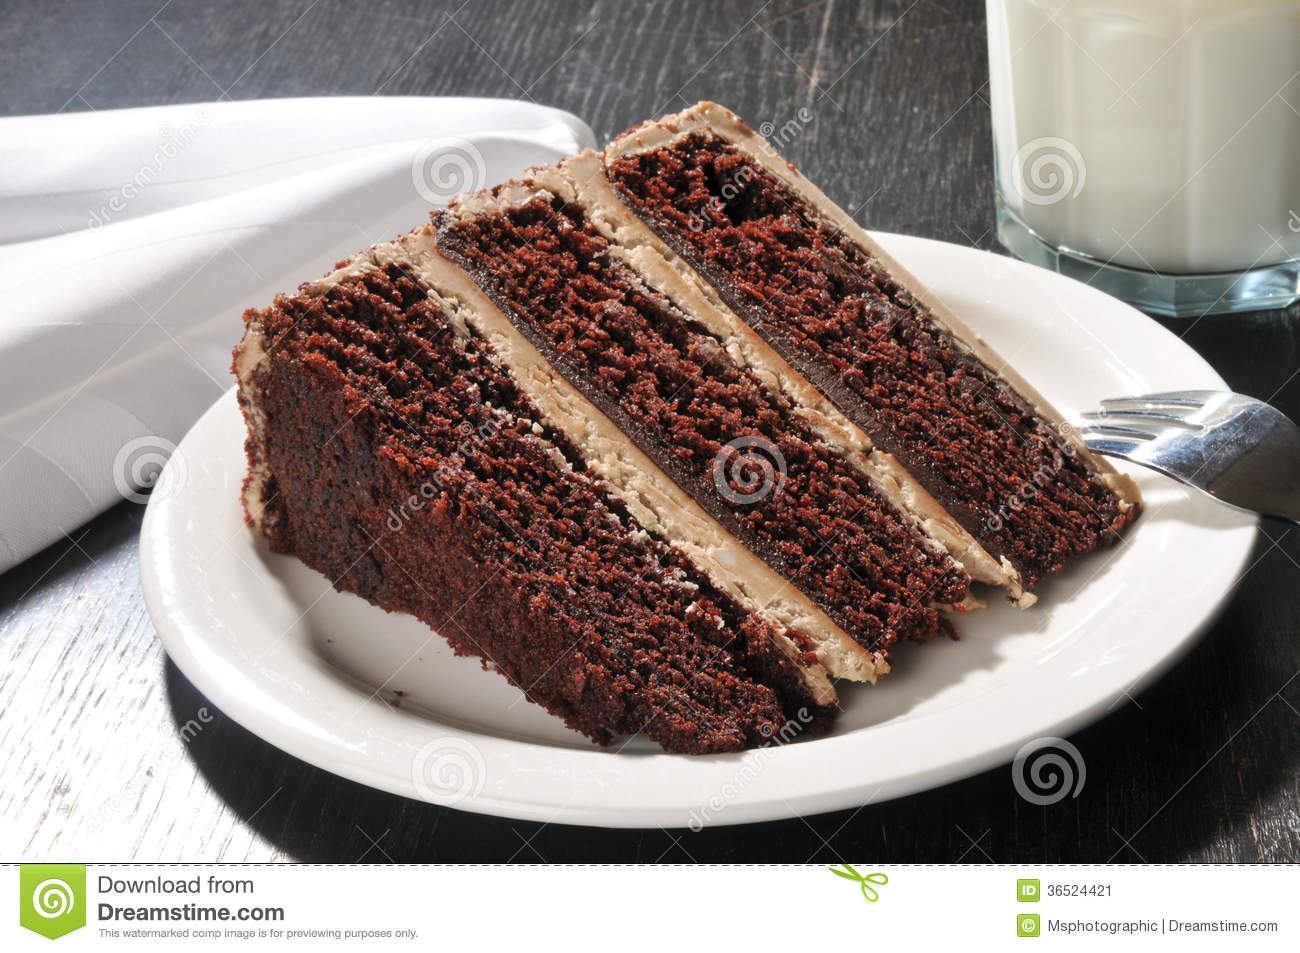 Fancy Chocolate Cake Images : Gourmet Chocolate Cake With Milk Stock Image - Image: 36524421